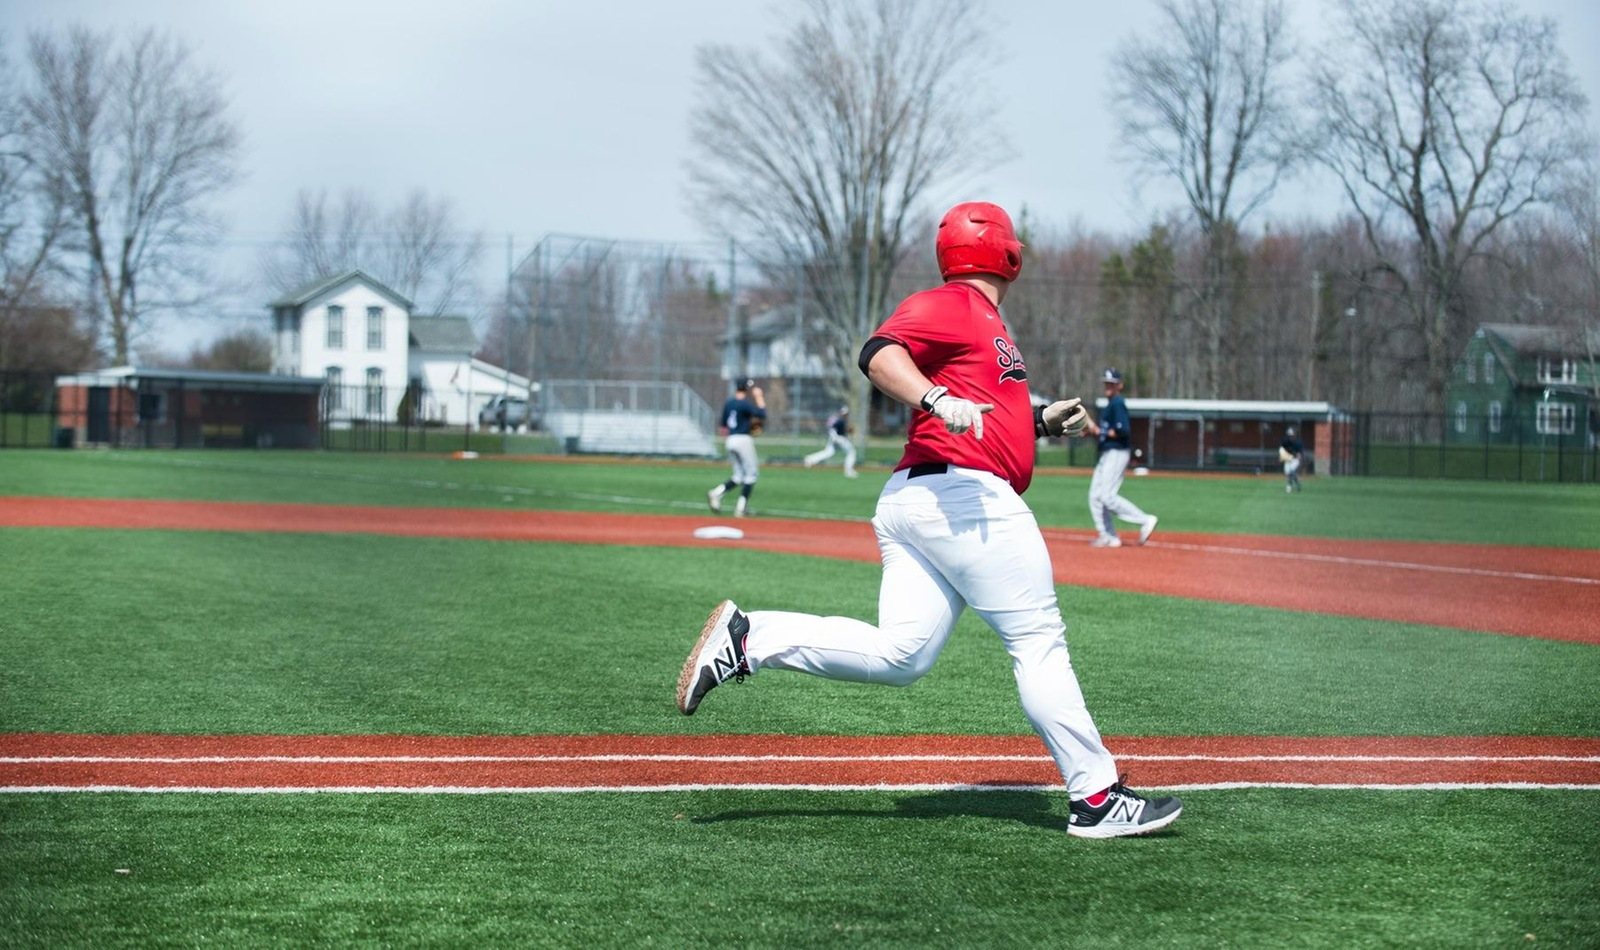 Spartan Baseball Opens Season with Loss to Bradford